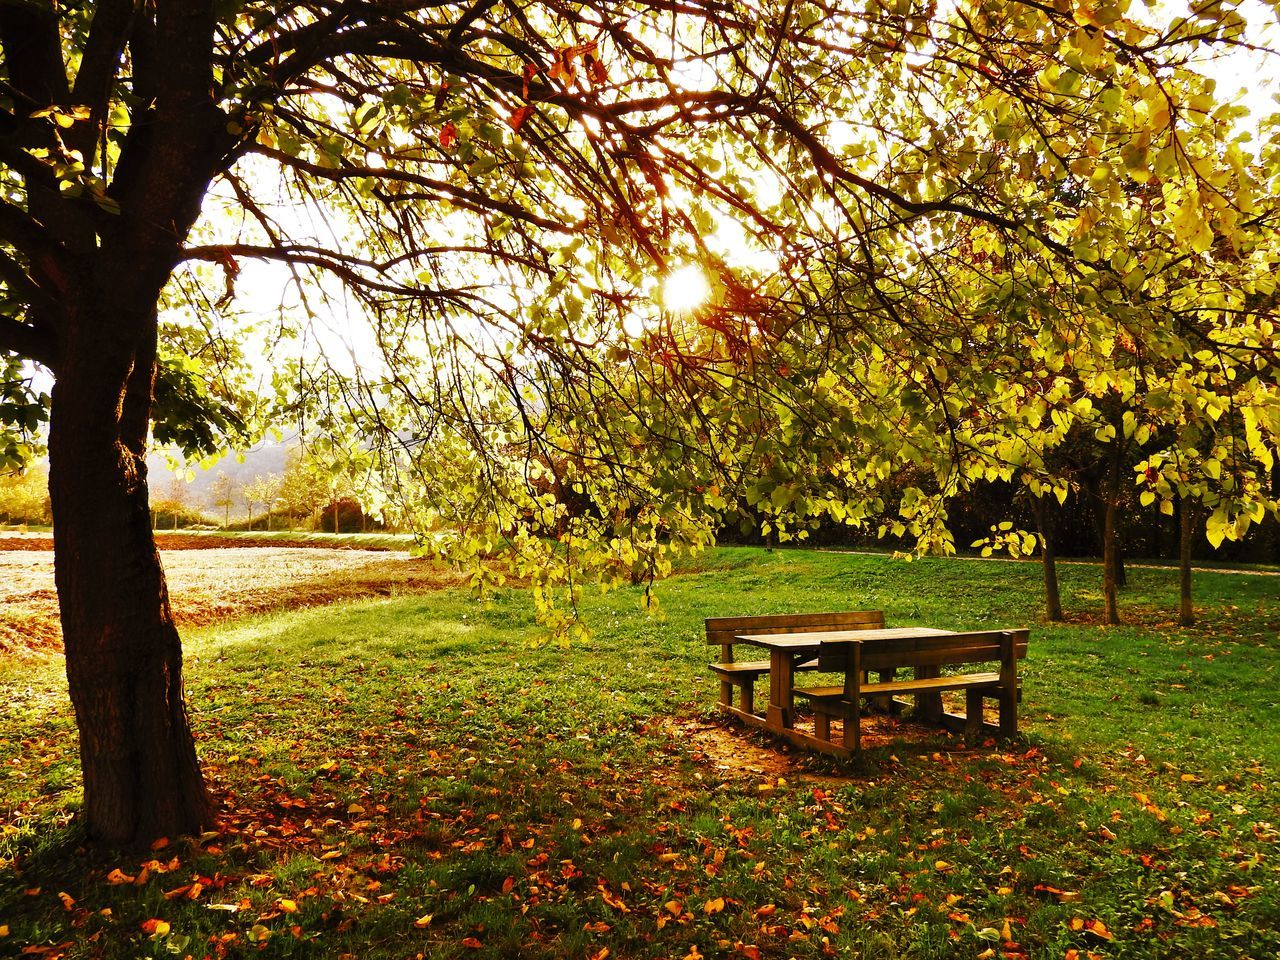 tree, nature, tranquility, beauty in nature, tranquil scene, autumn, park - man made space, growth, branch, scenics, leaf, no people, outdoors, landscape, tree trunk, day, grass